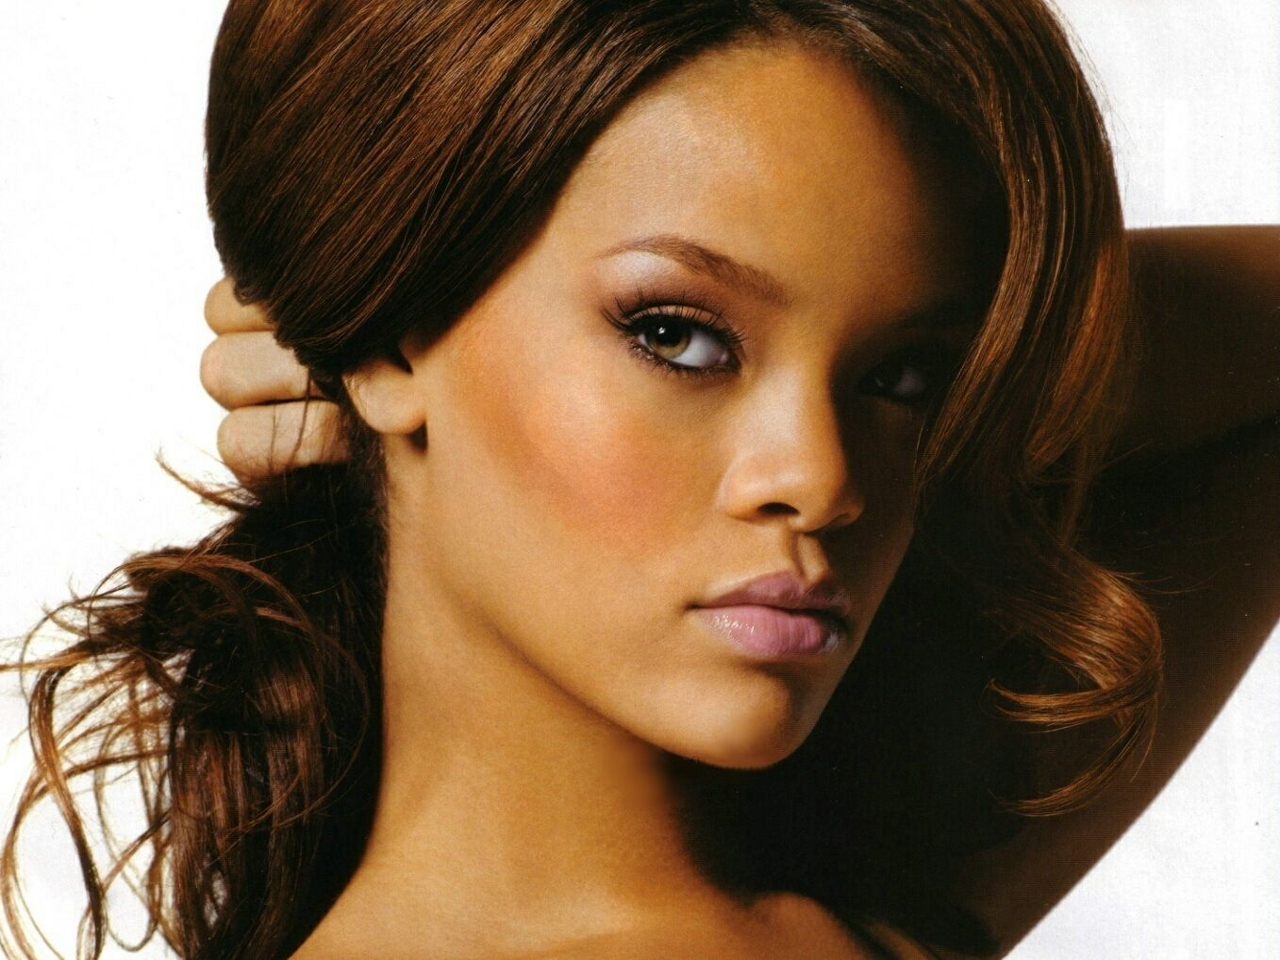 Rihanna Hollywood Star Profile And Latest Pictures 2013 ... Rihanna